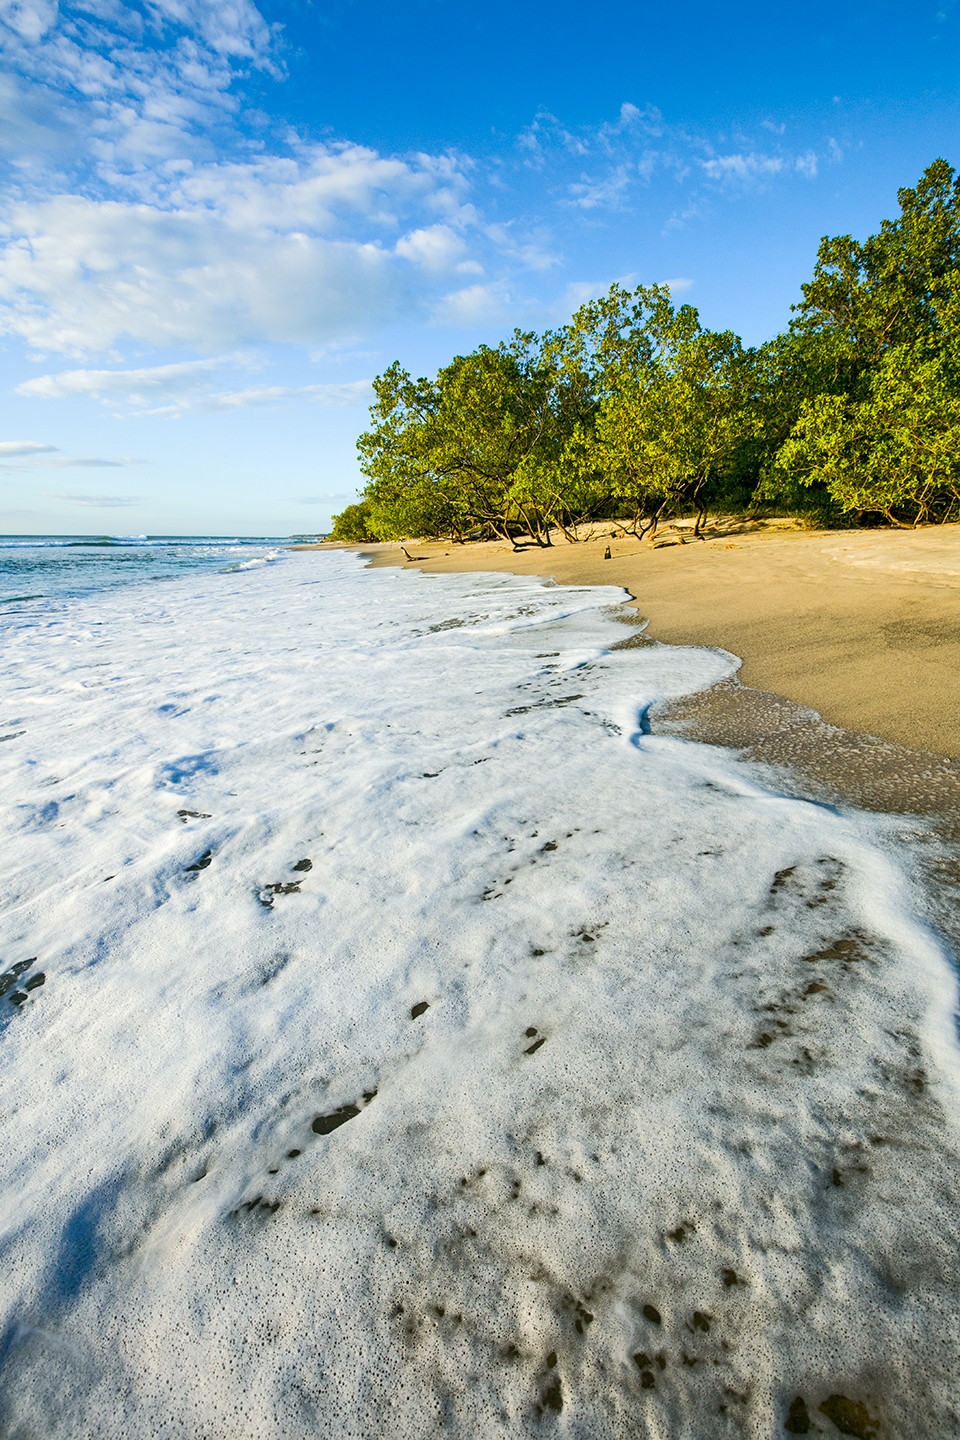 A foamy wave rushes the shore on a sunny day in Costa Rica.